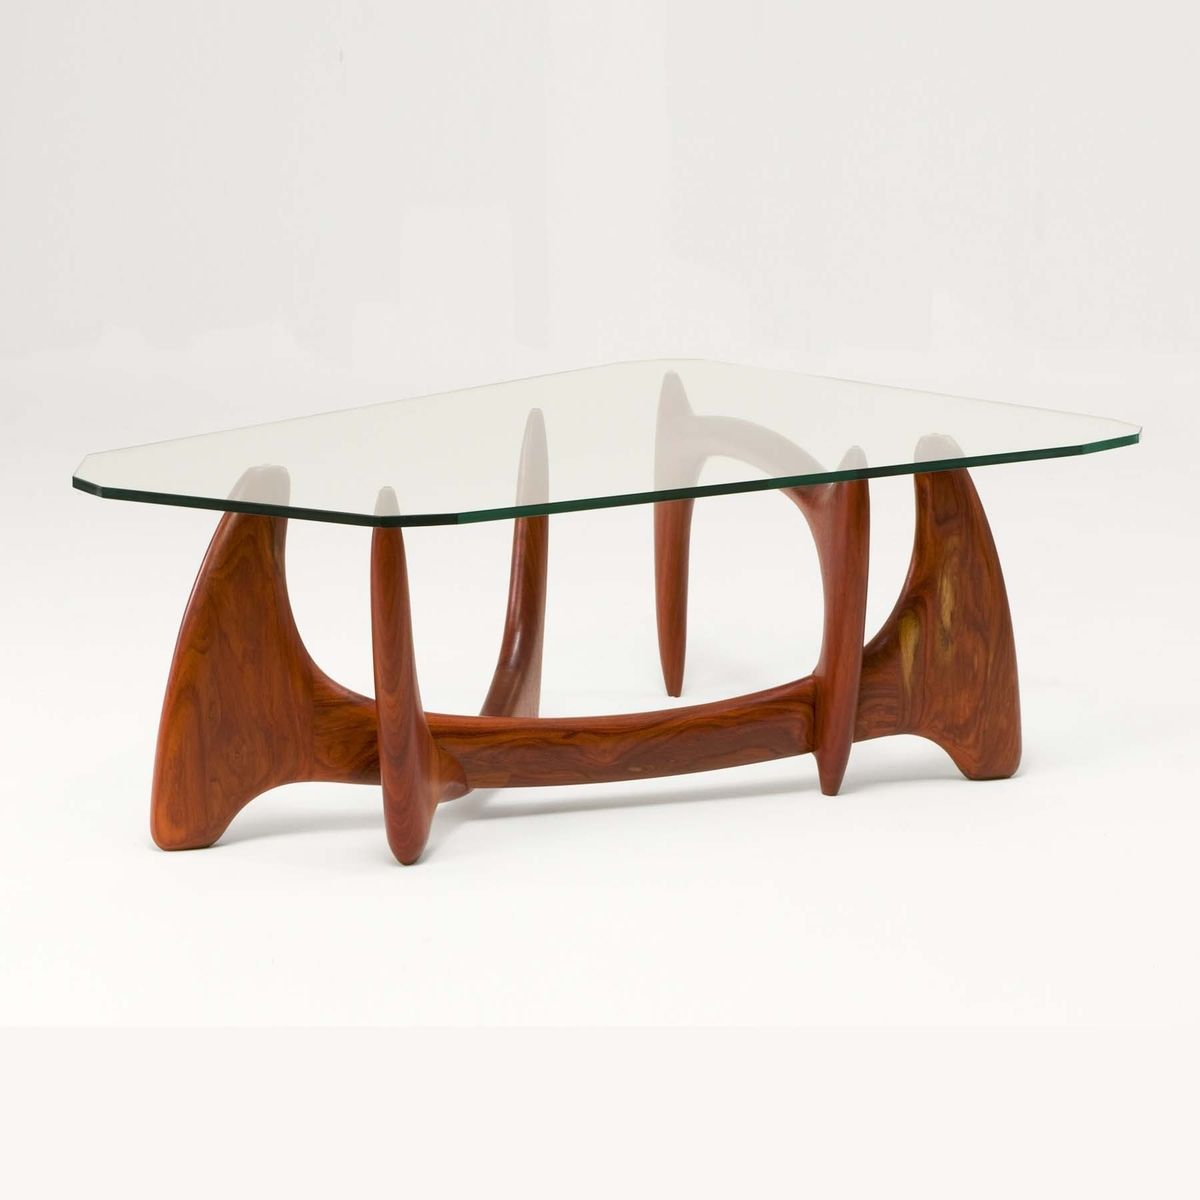 Hand Crafted Coffee Table Glass Top Mid Century Modern Handmade Wood Base By Nathan Hunter Design